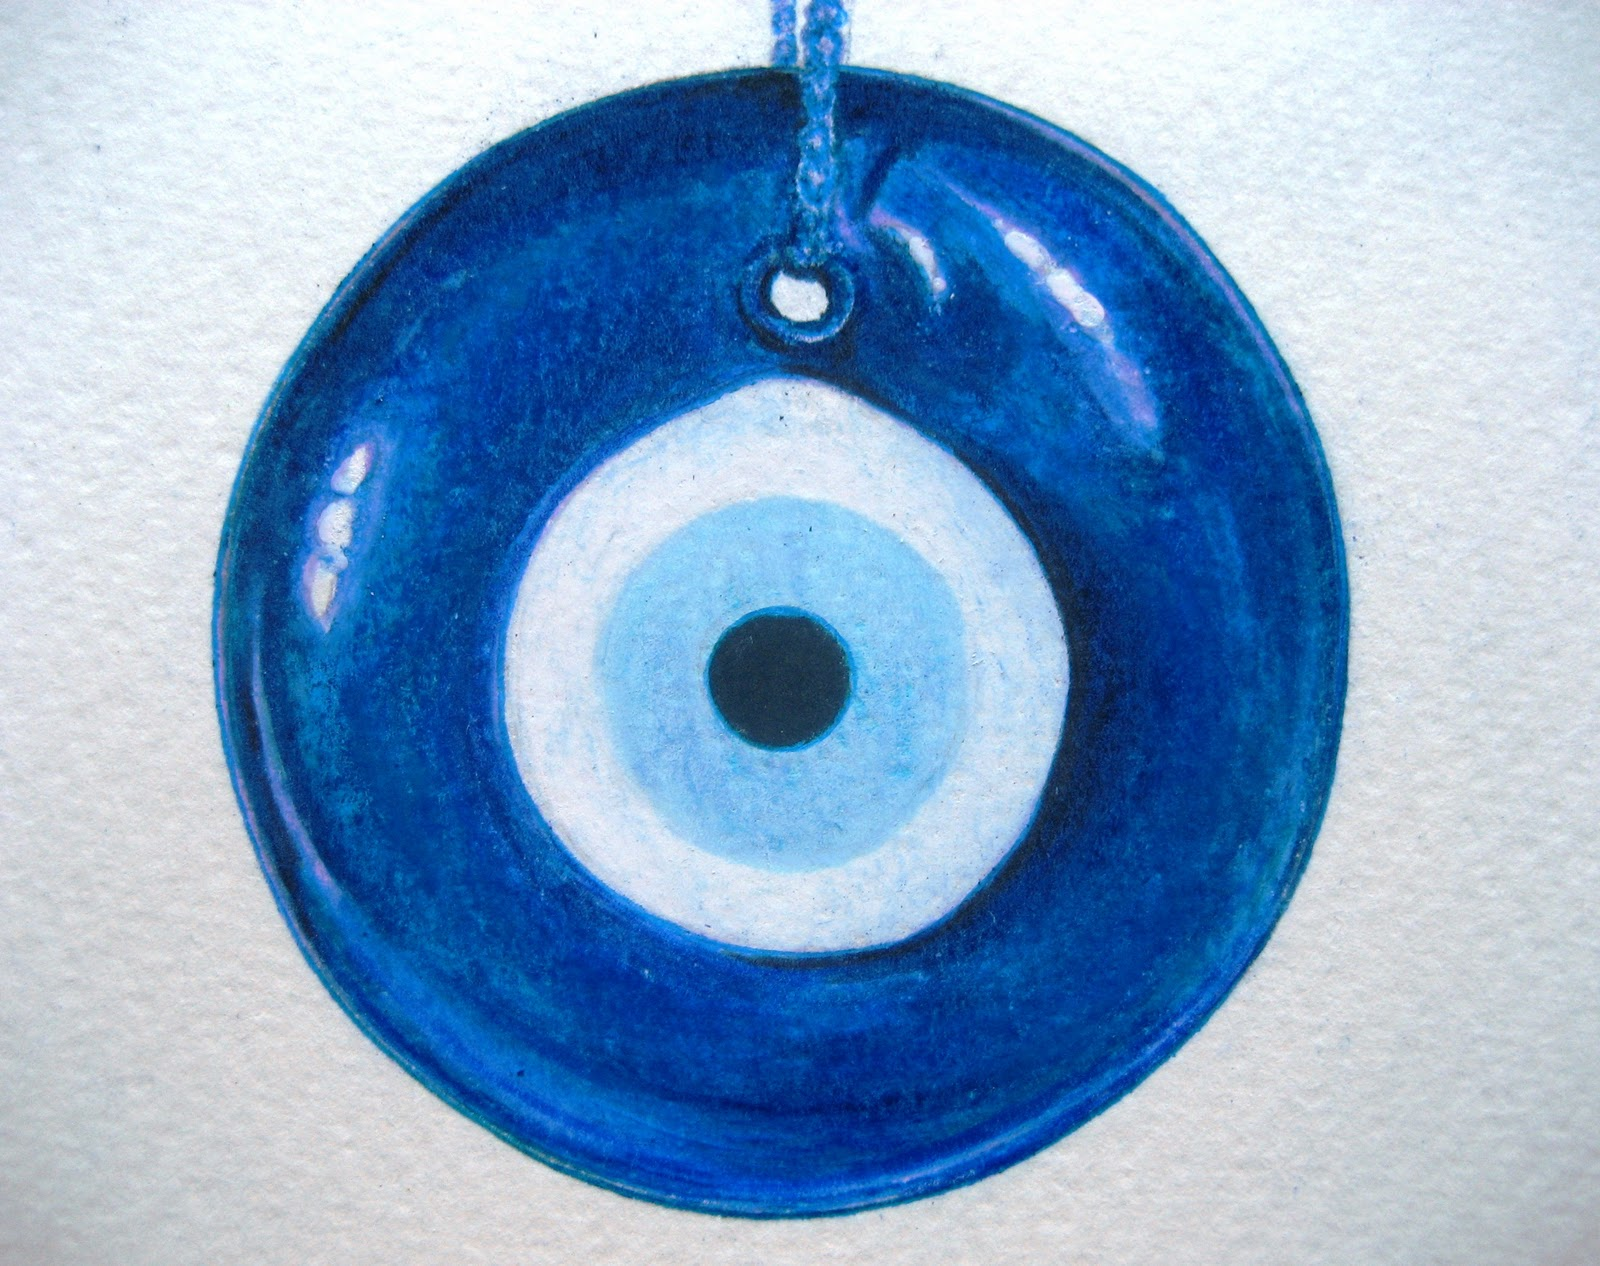 March 7, 2011 - Nazar (Evil Eye Amulet) | A Drawing a Day for a Year